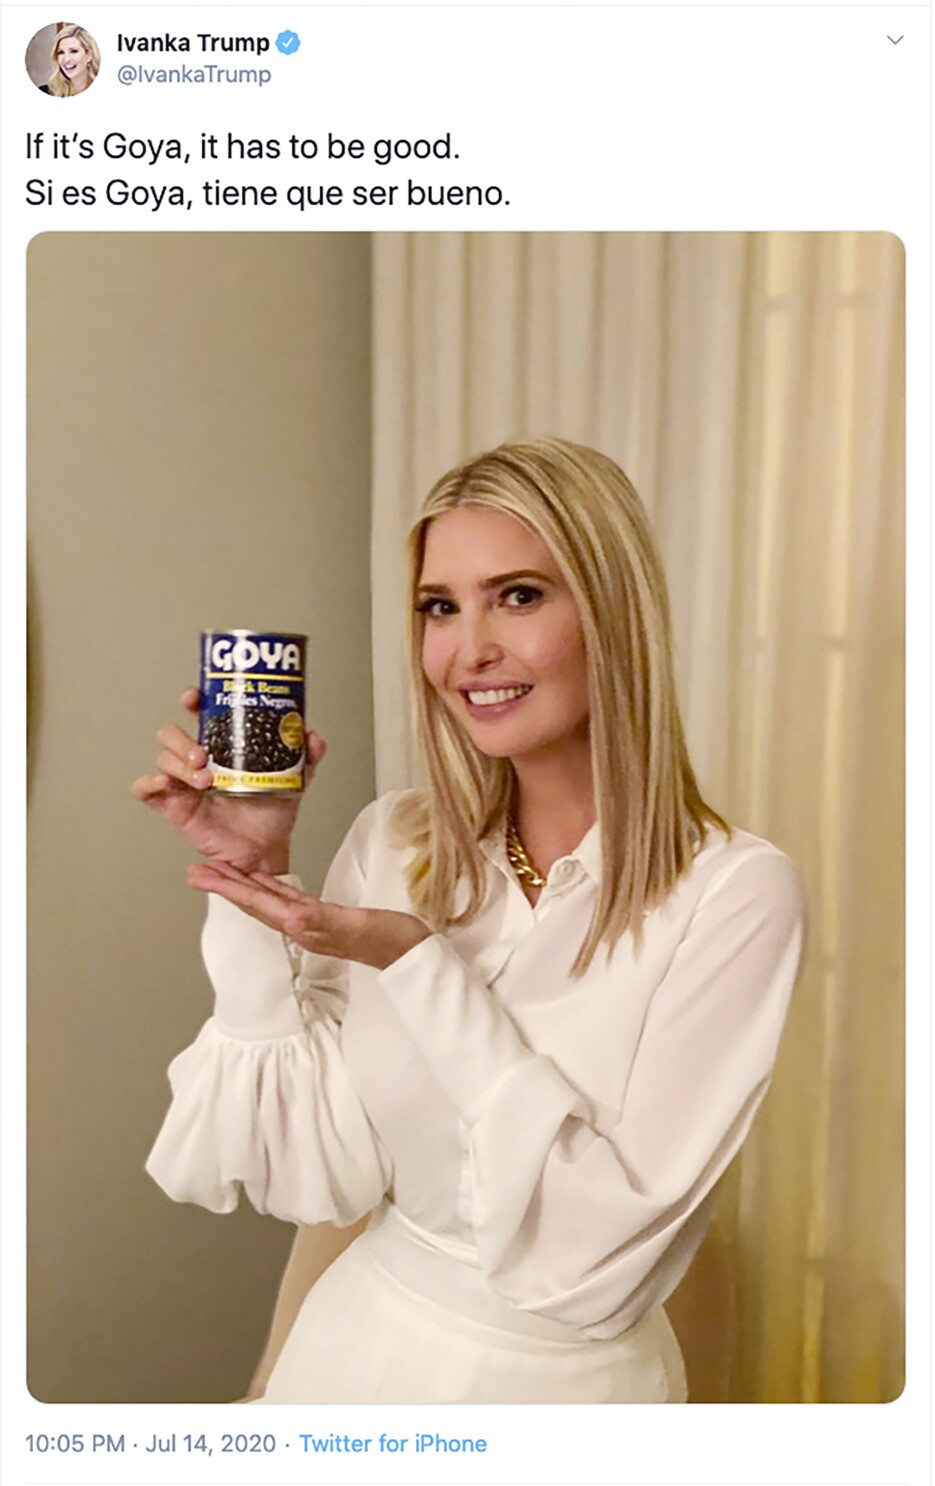 Ivanka Trump Defends Goya Post That Watchdogs Call Unethical Los Angeles Times